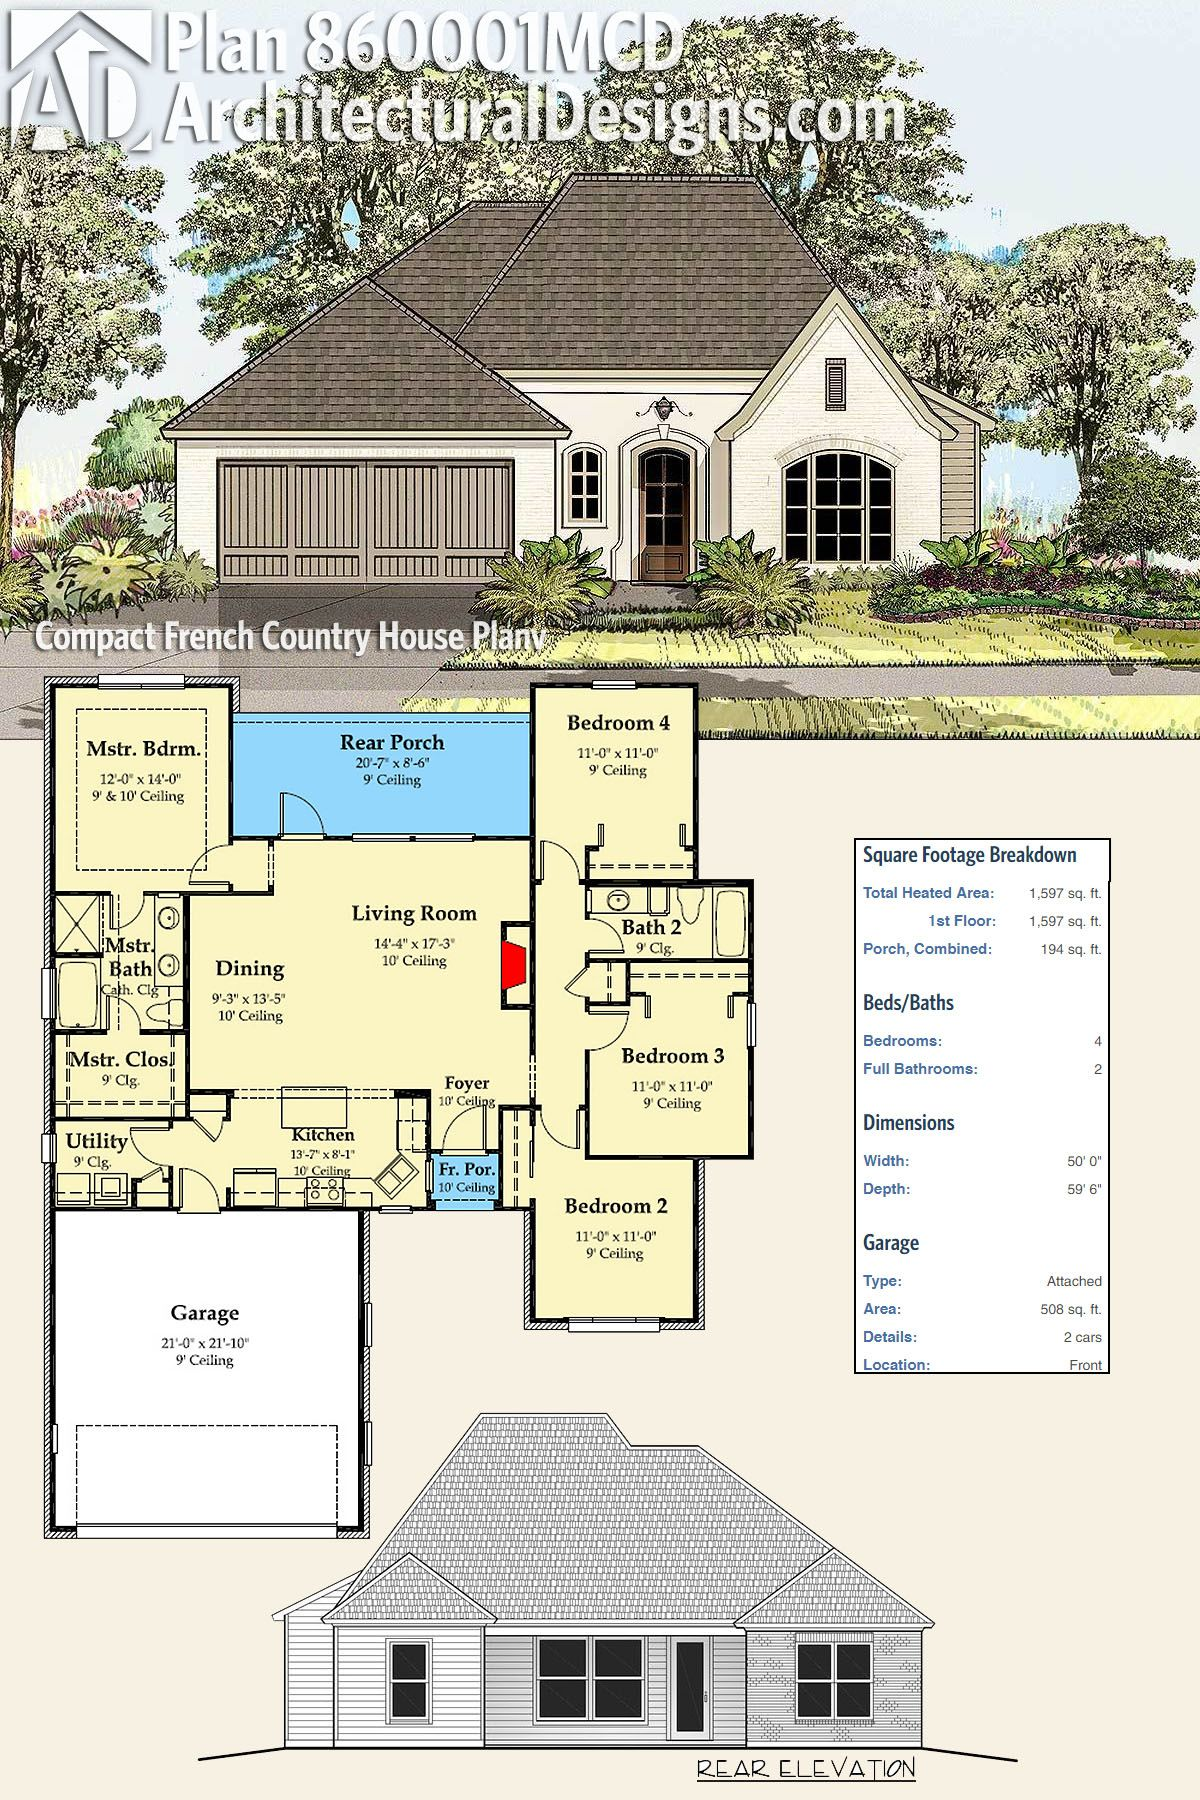 Plan 860001mcd Compact French Country House Plan In 2019 Home